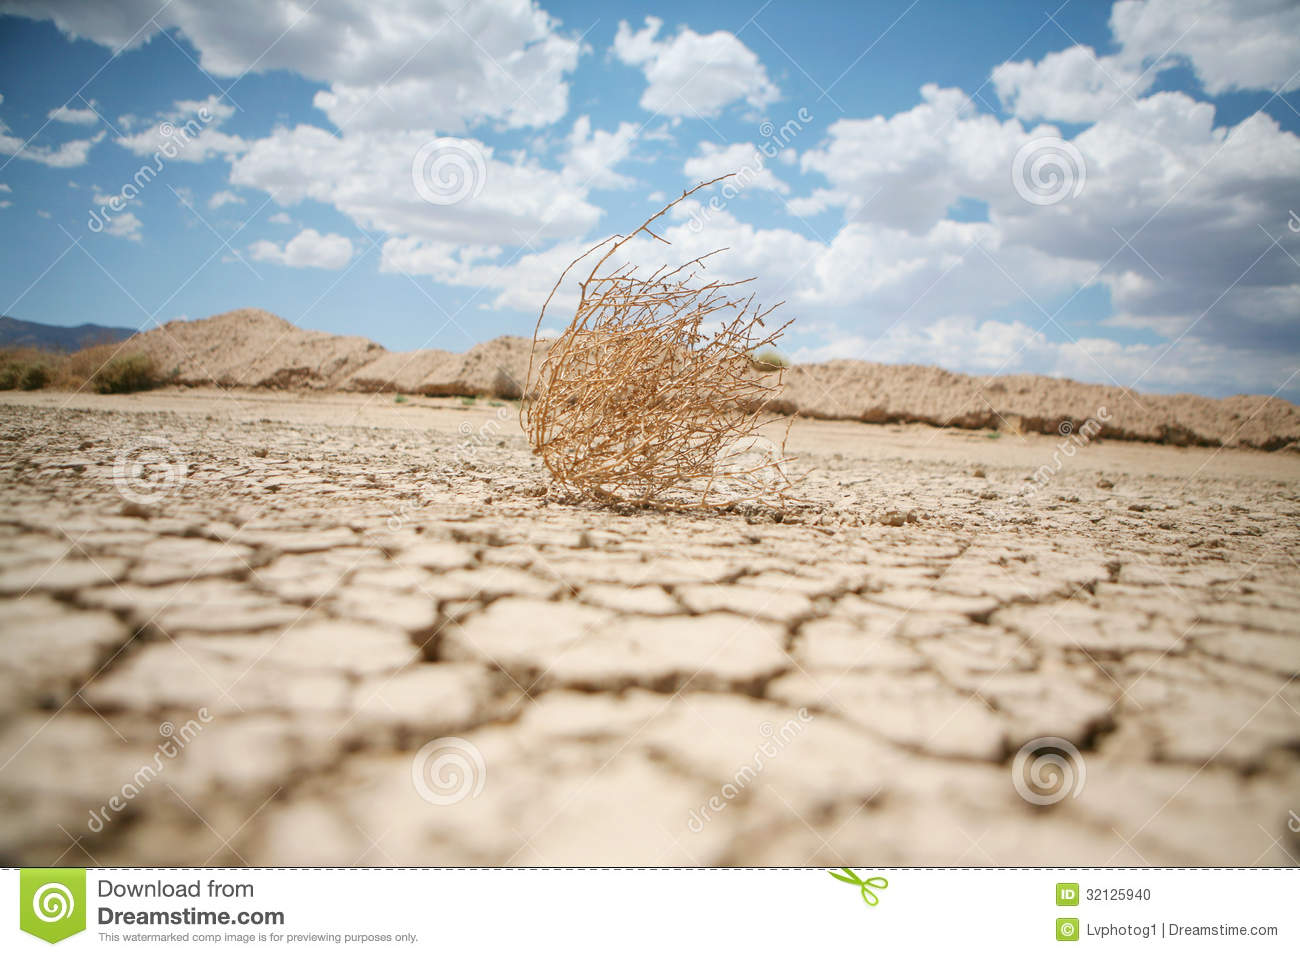 Tumbleweed in the desert